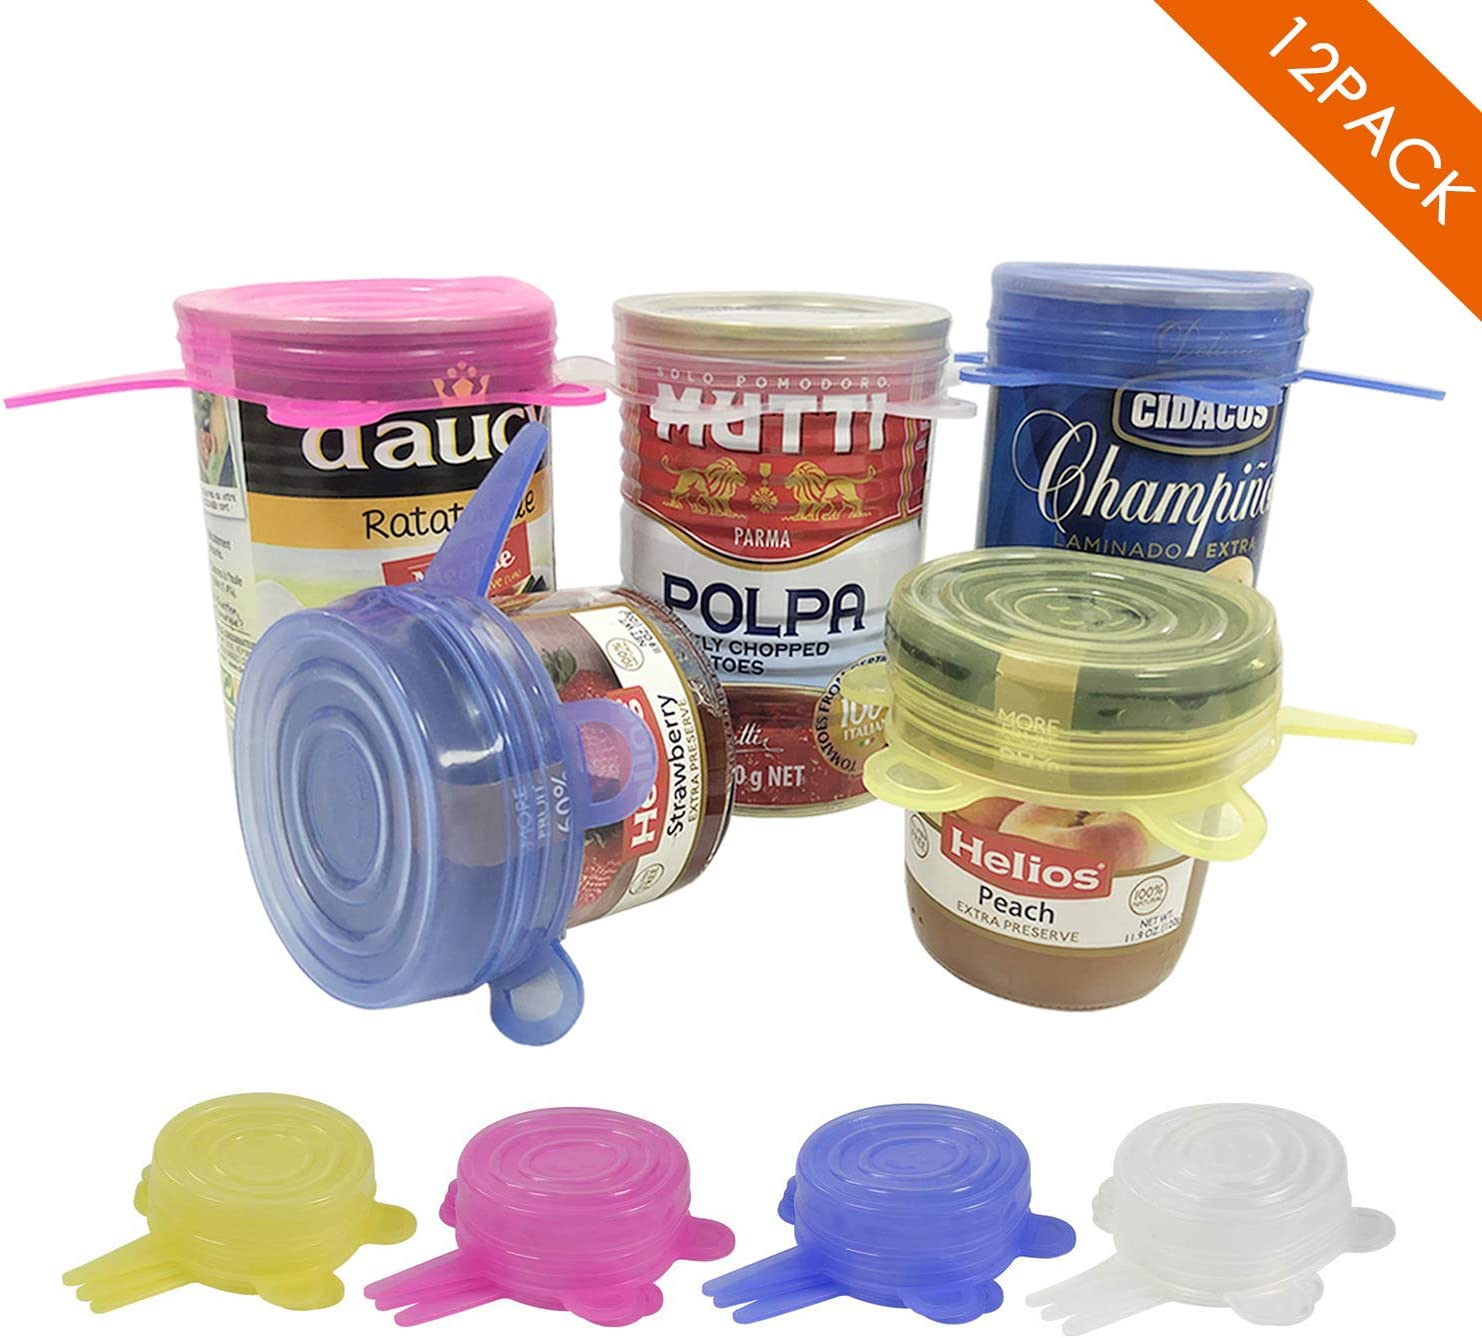 Silicone Stretch Lids, 12 Pack Small, Reusable Durable and Expandable Lids to Keep Food Fresh, the Same Sizes of 2.6 Inch